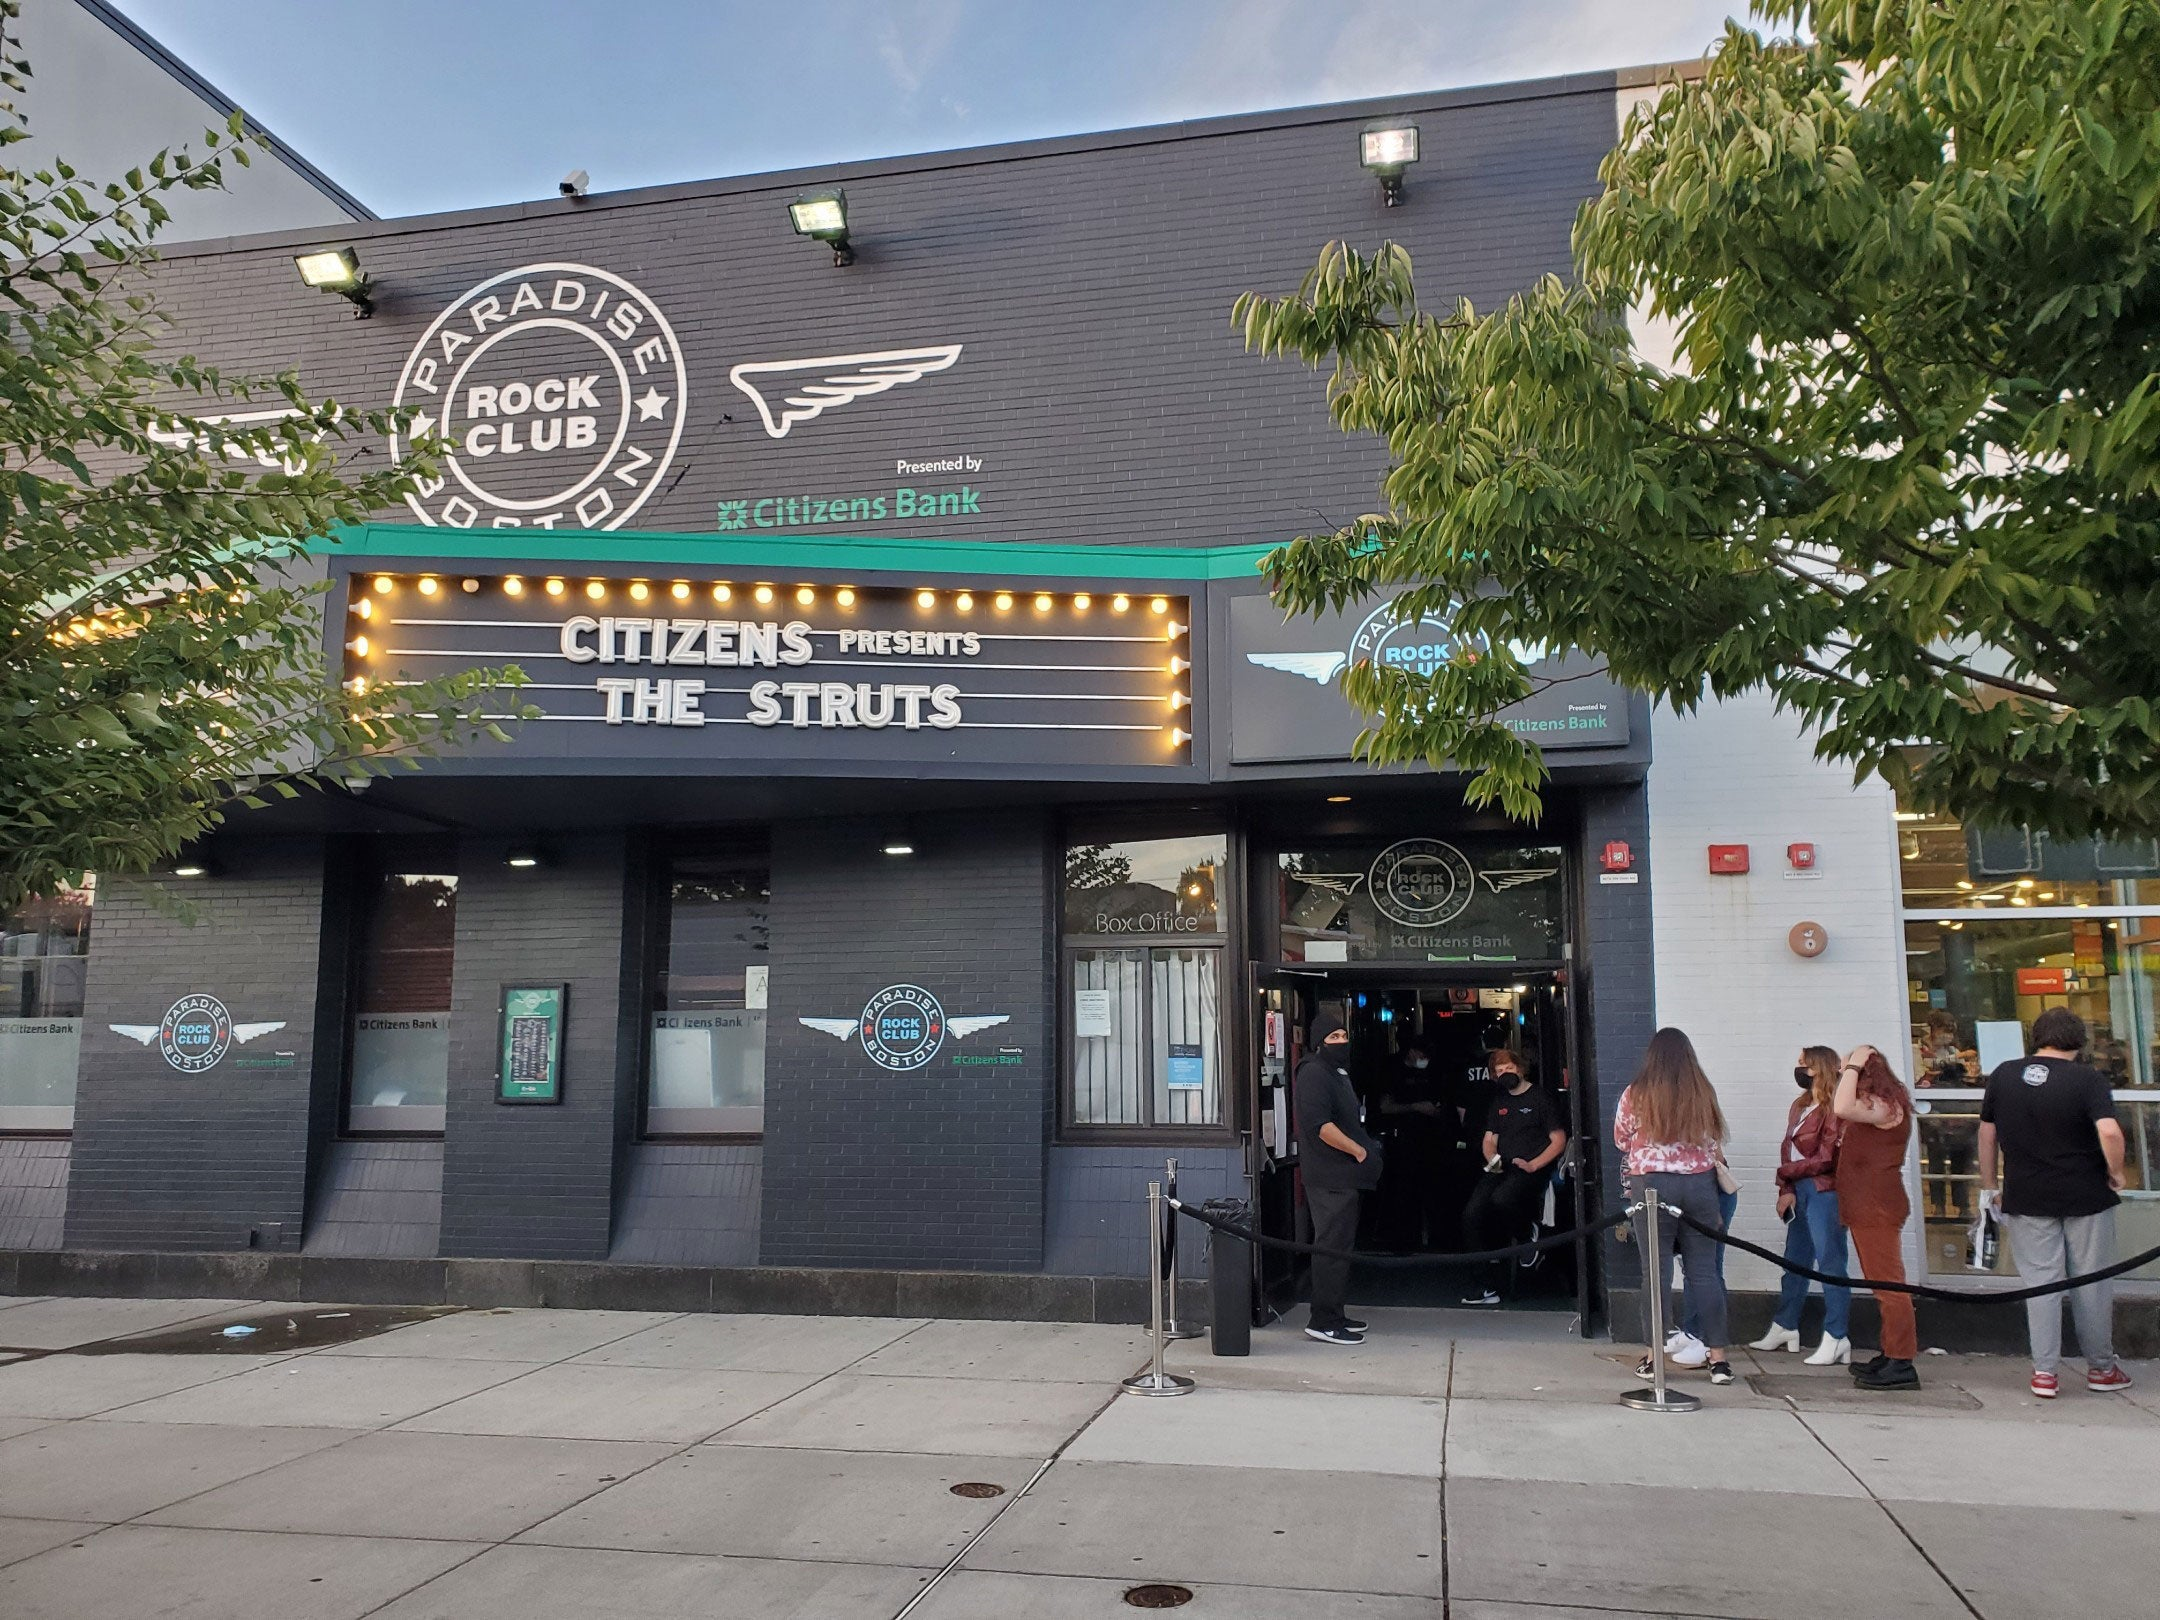 Paradise Rock Club presented by Citizens